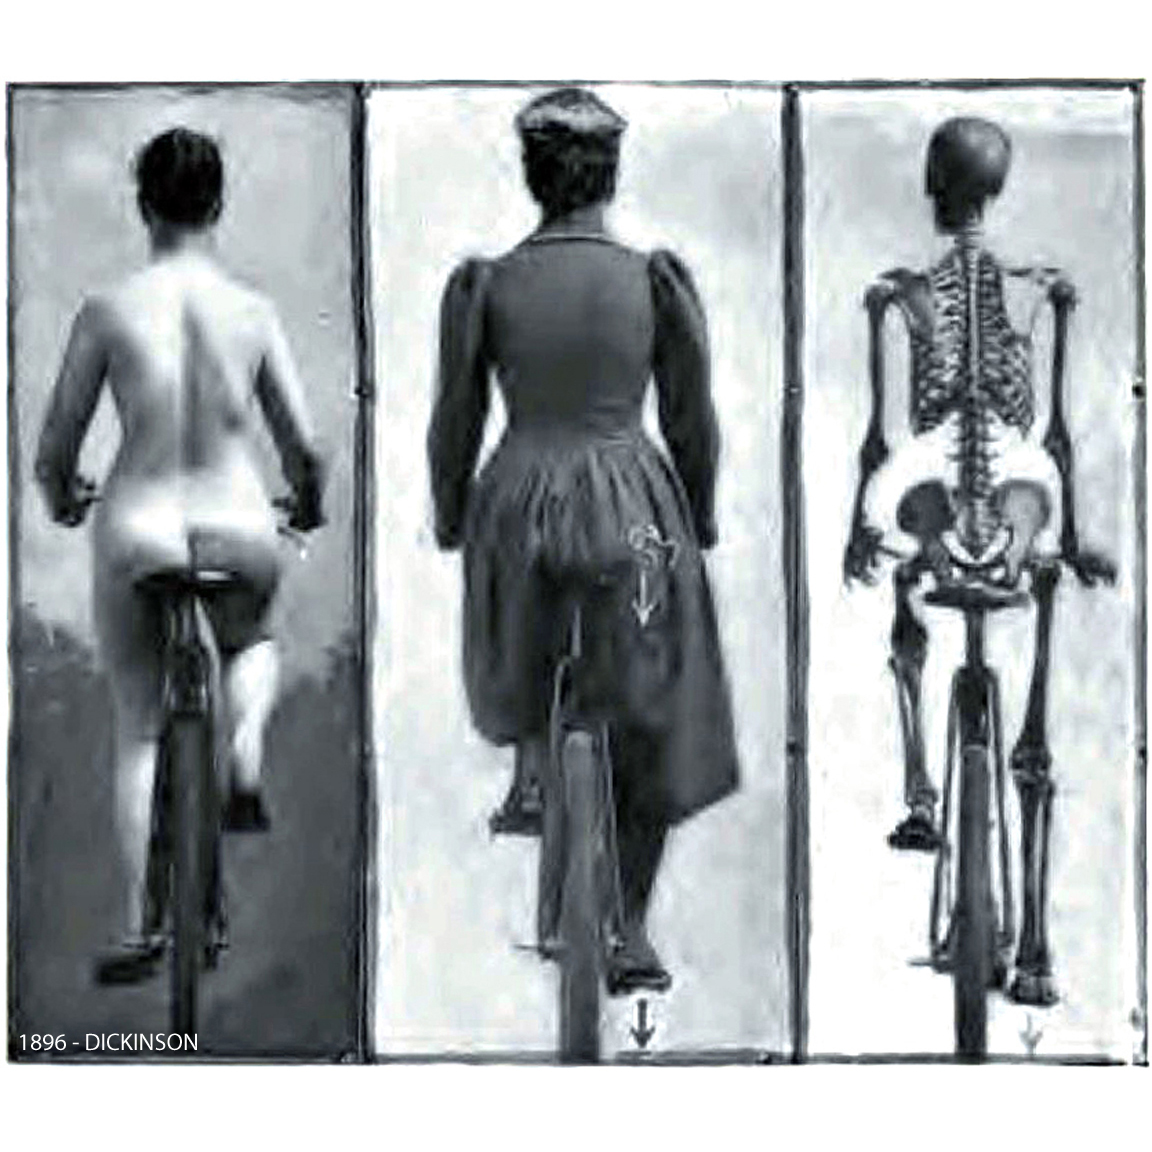 1896-DICKINSON-Correct Posture while Bicycling